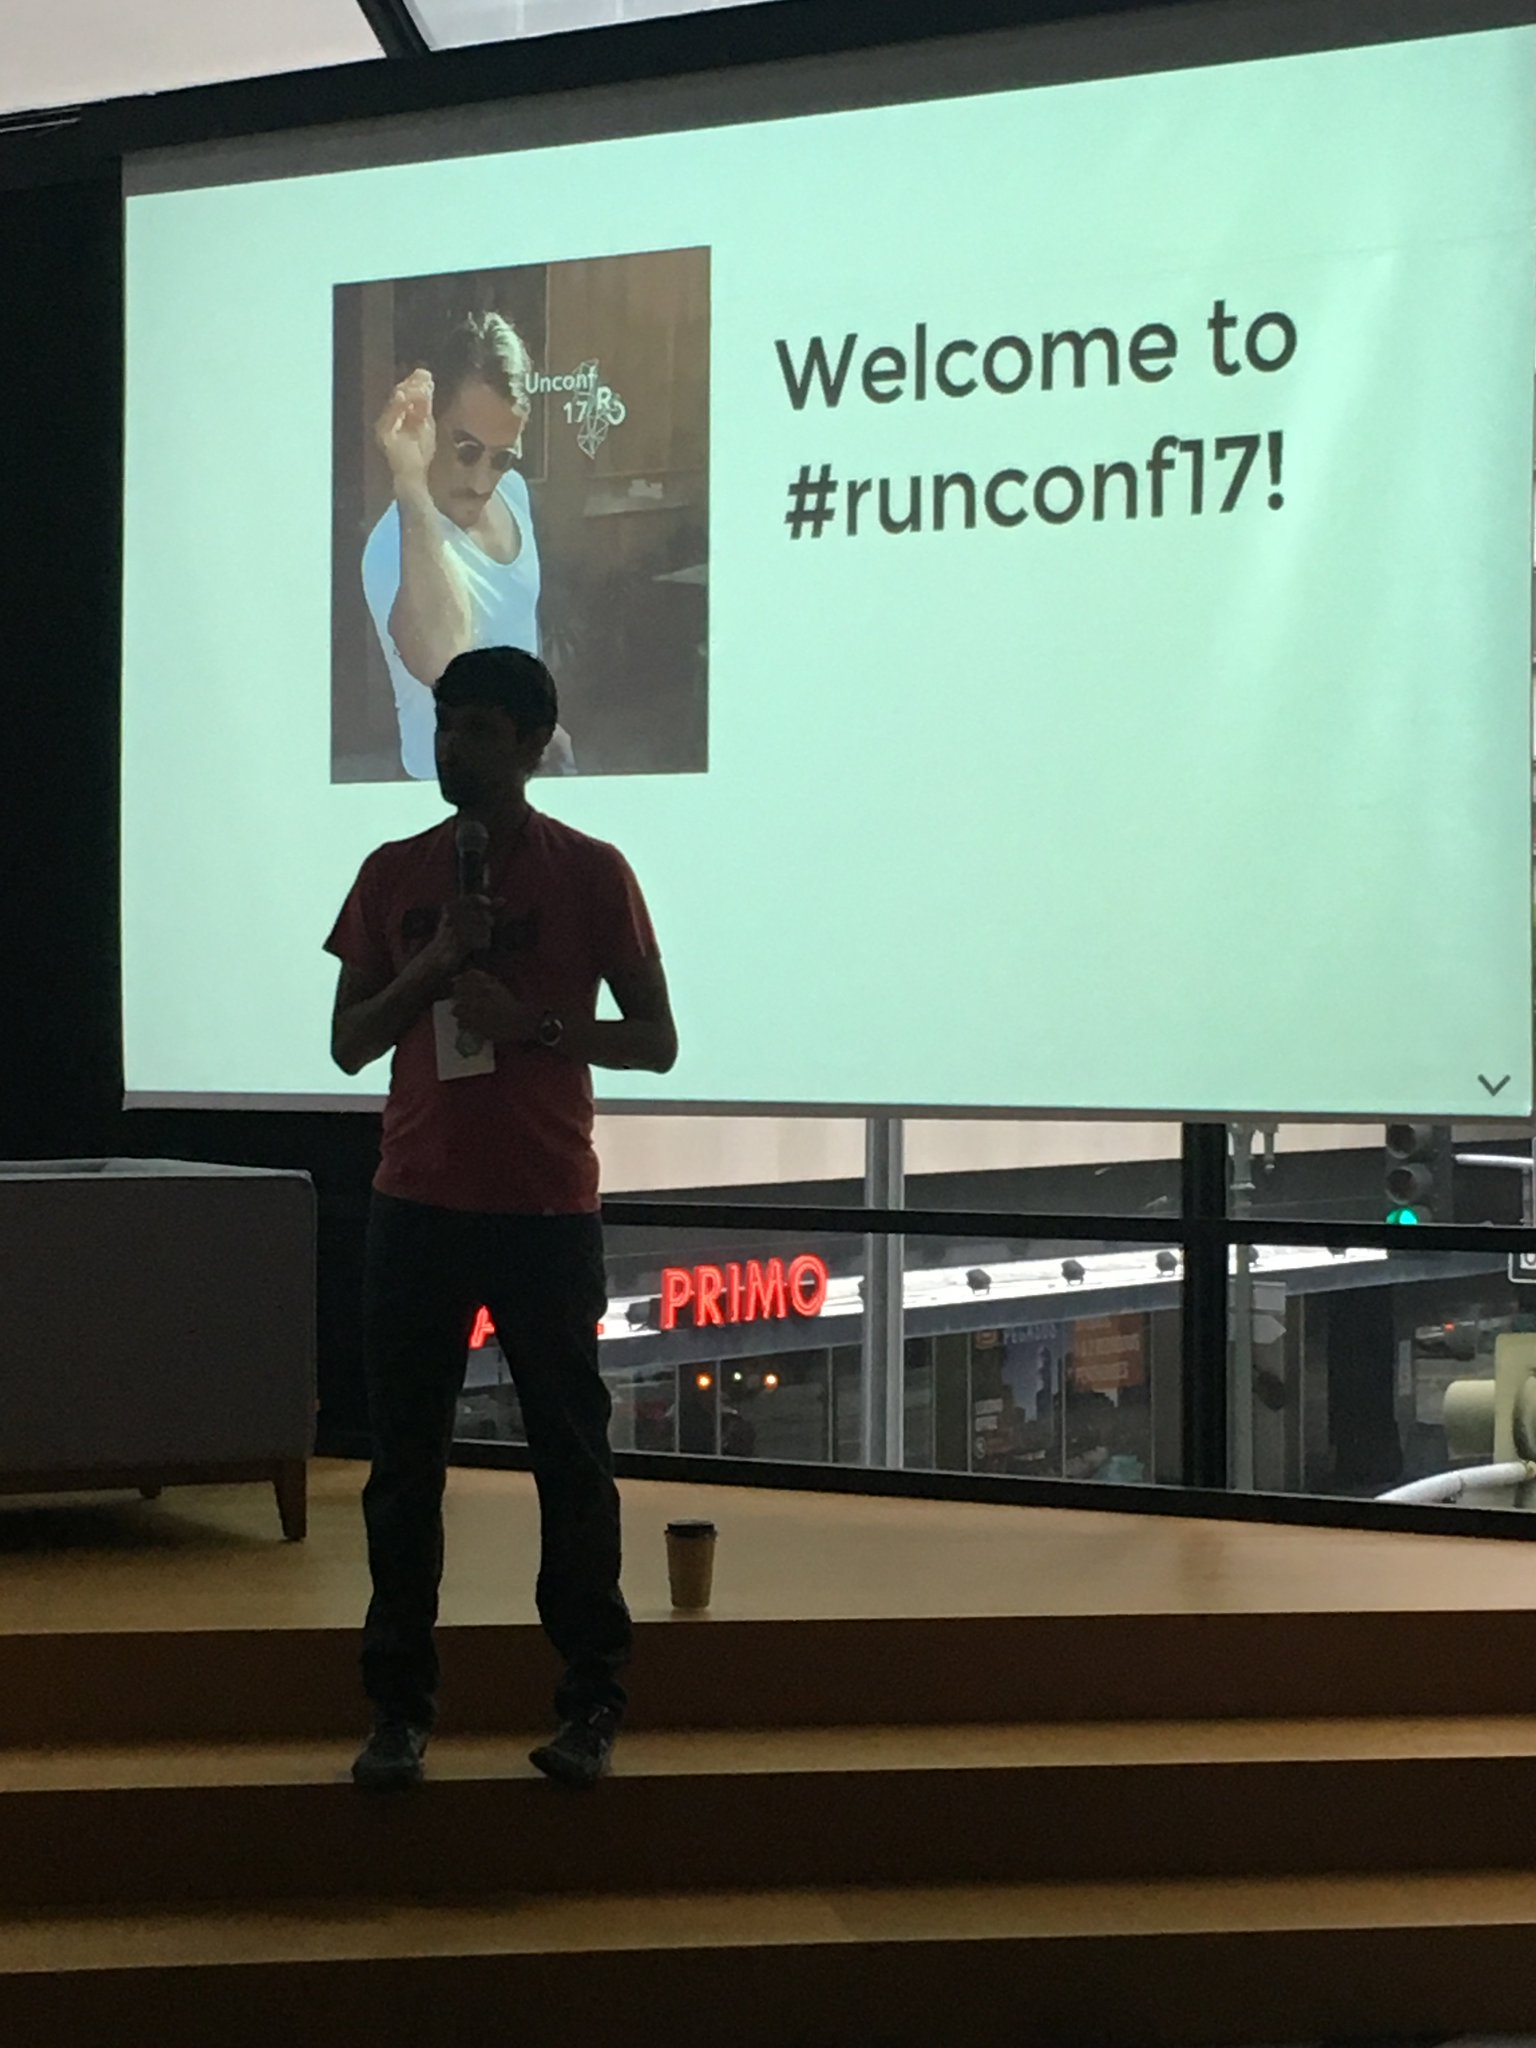 .@_inundata explaining why he's not wearing a salt bae outfit #runconf17 https://t.co/3z1Eu2xGW0